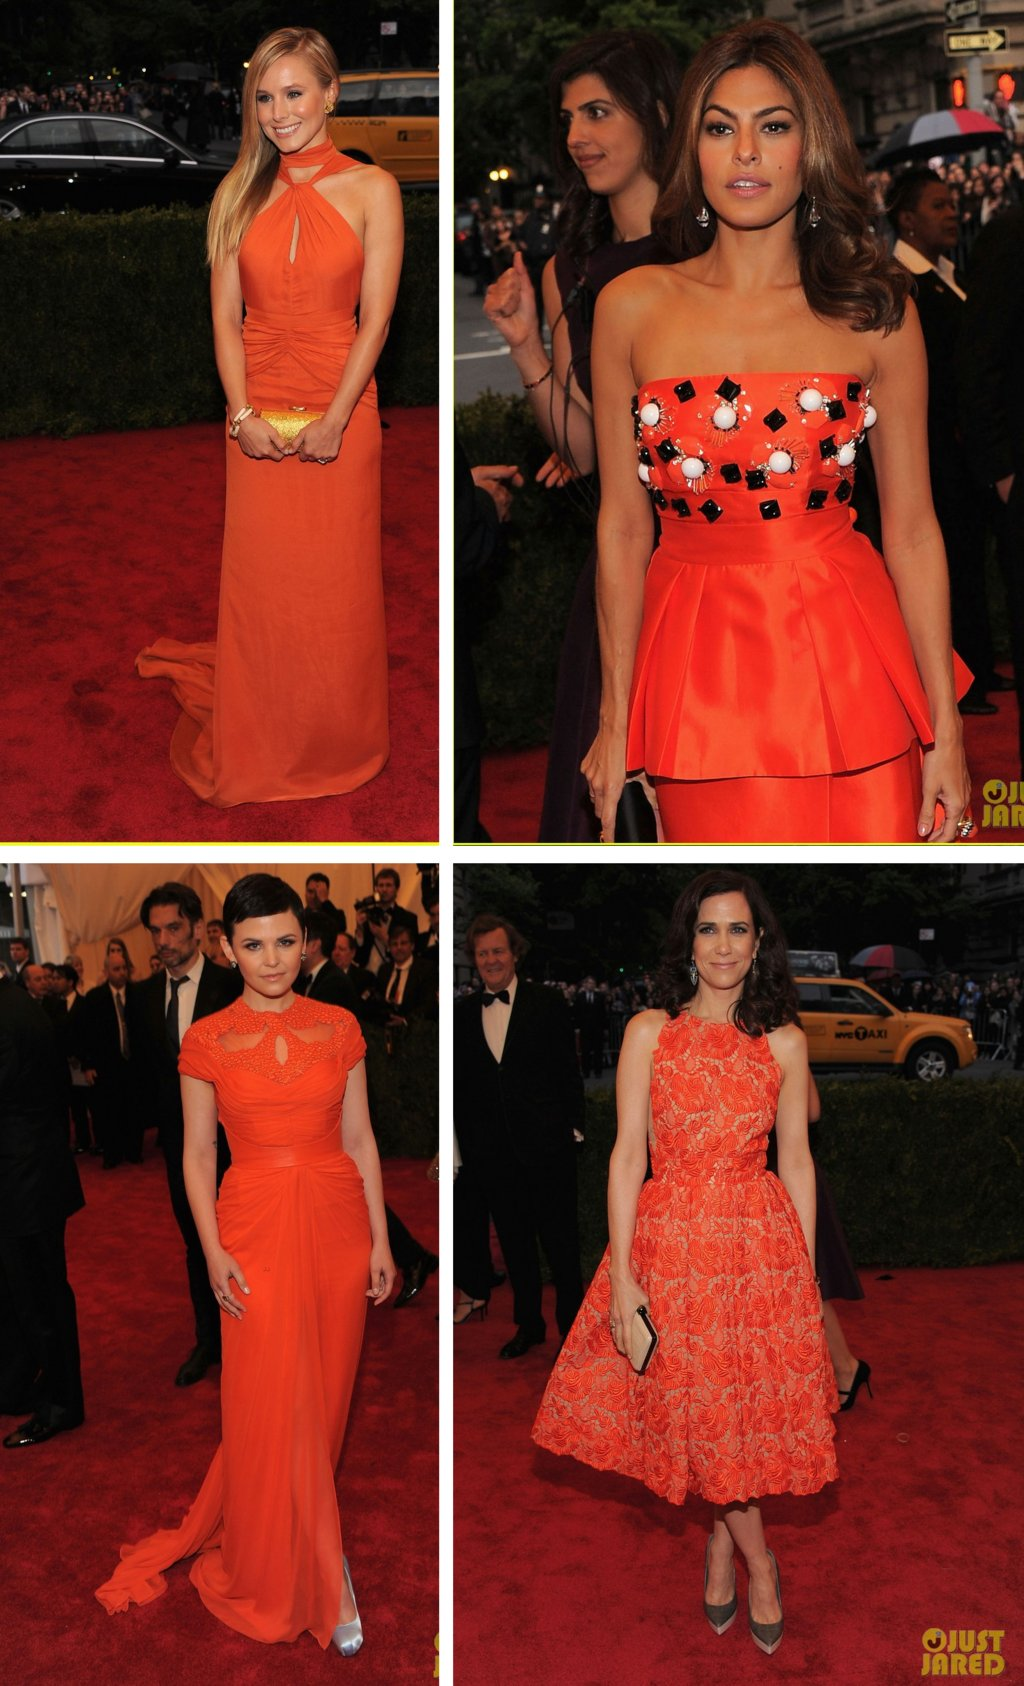 Met-gala-wedding-inspiration-orange-gowns-tangerine-tango.full